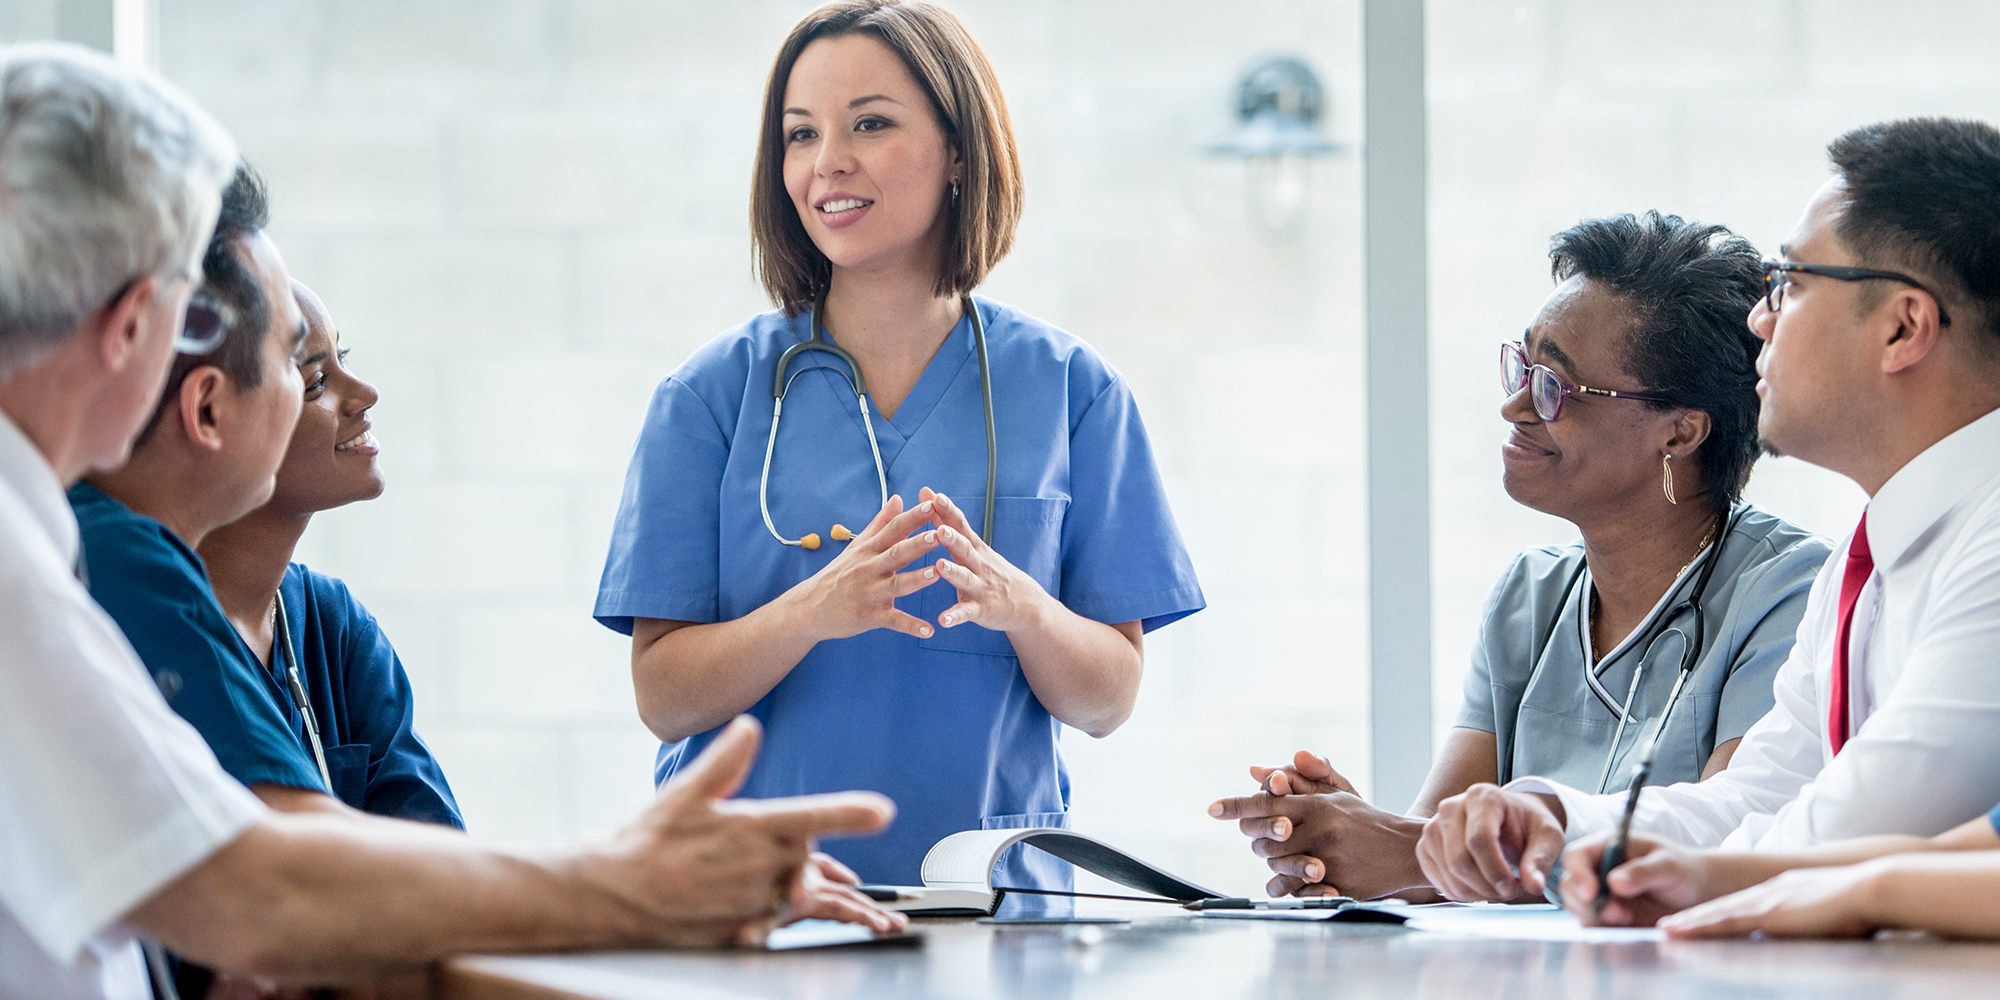 Physicians Discussing Standard of Care